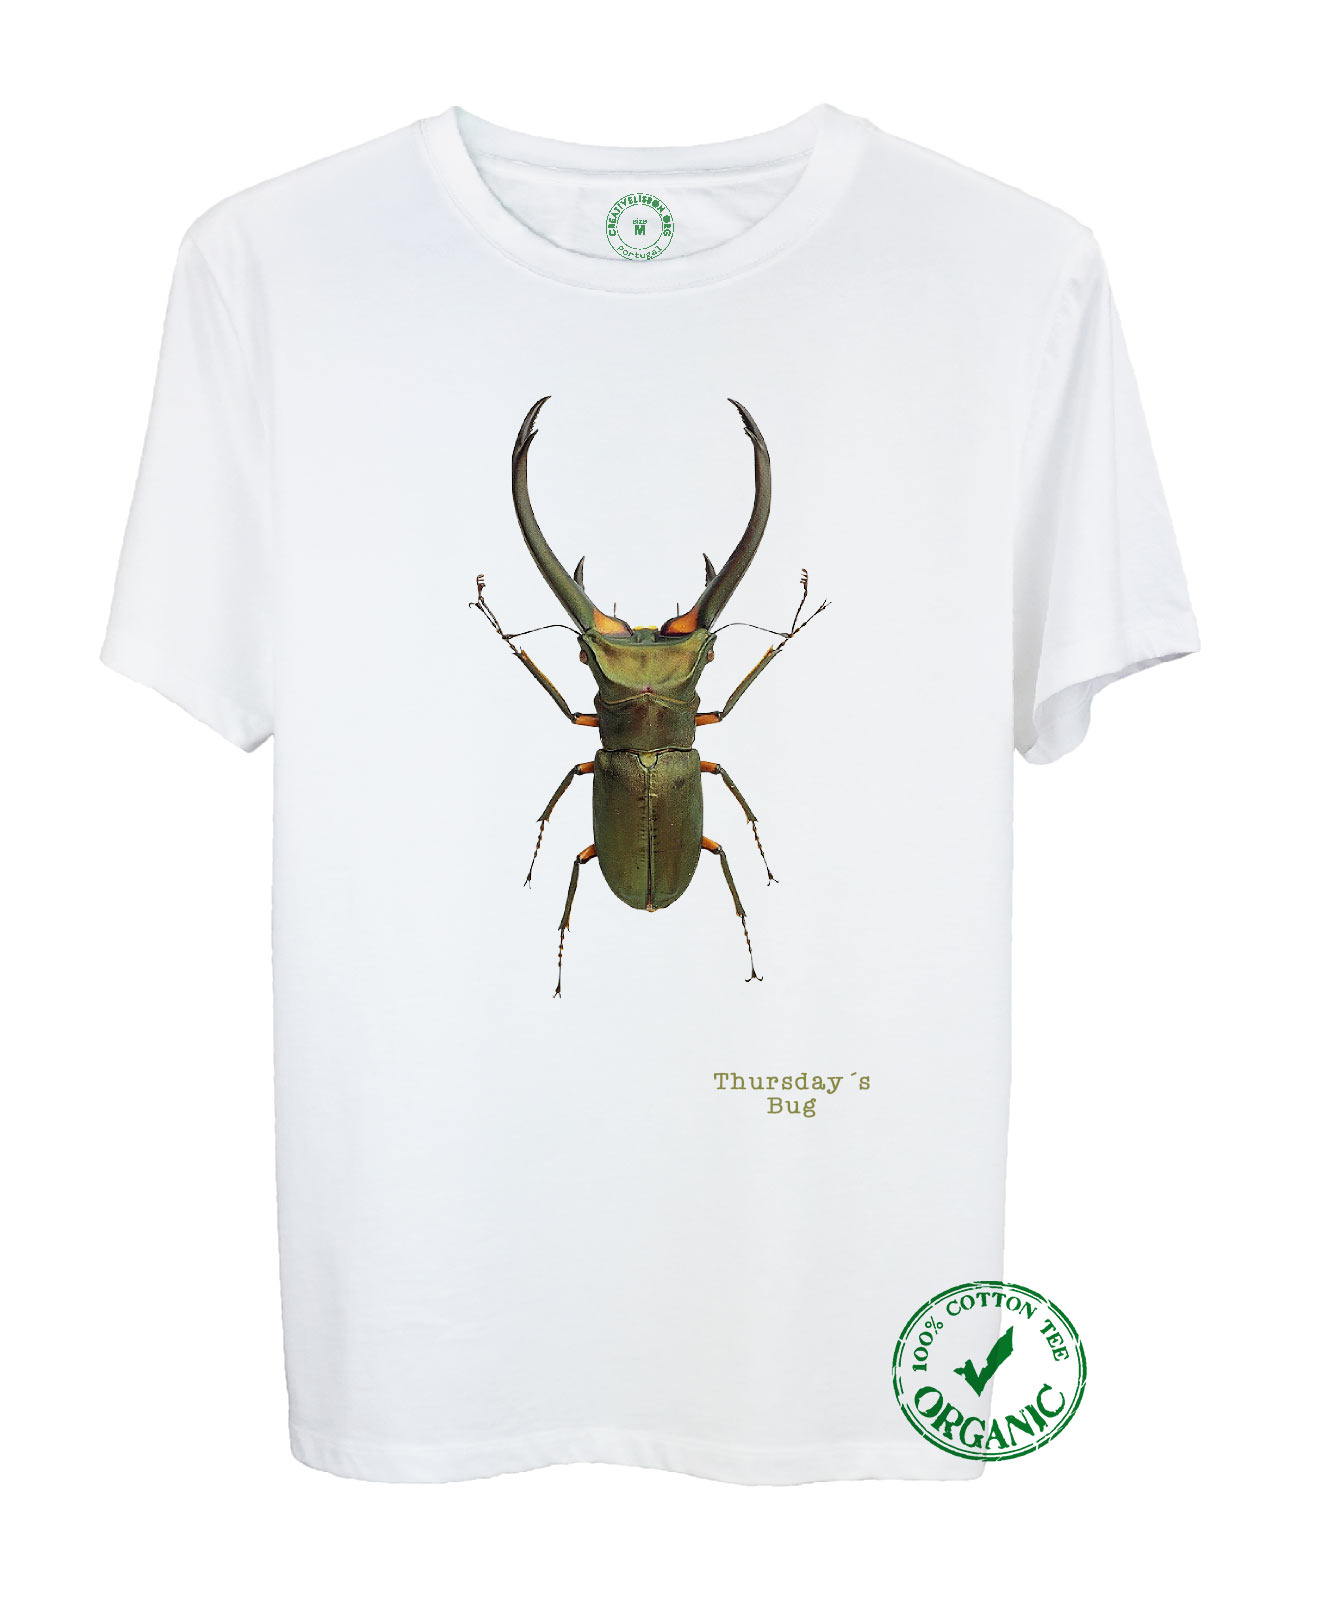 Thursday Bug Organic T-shirt